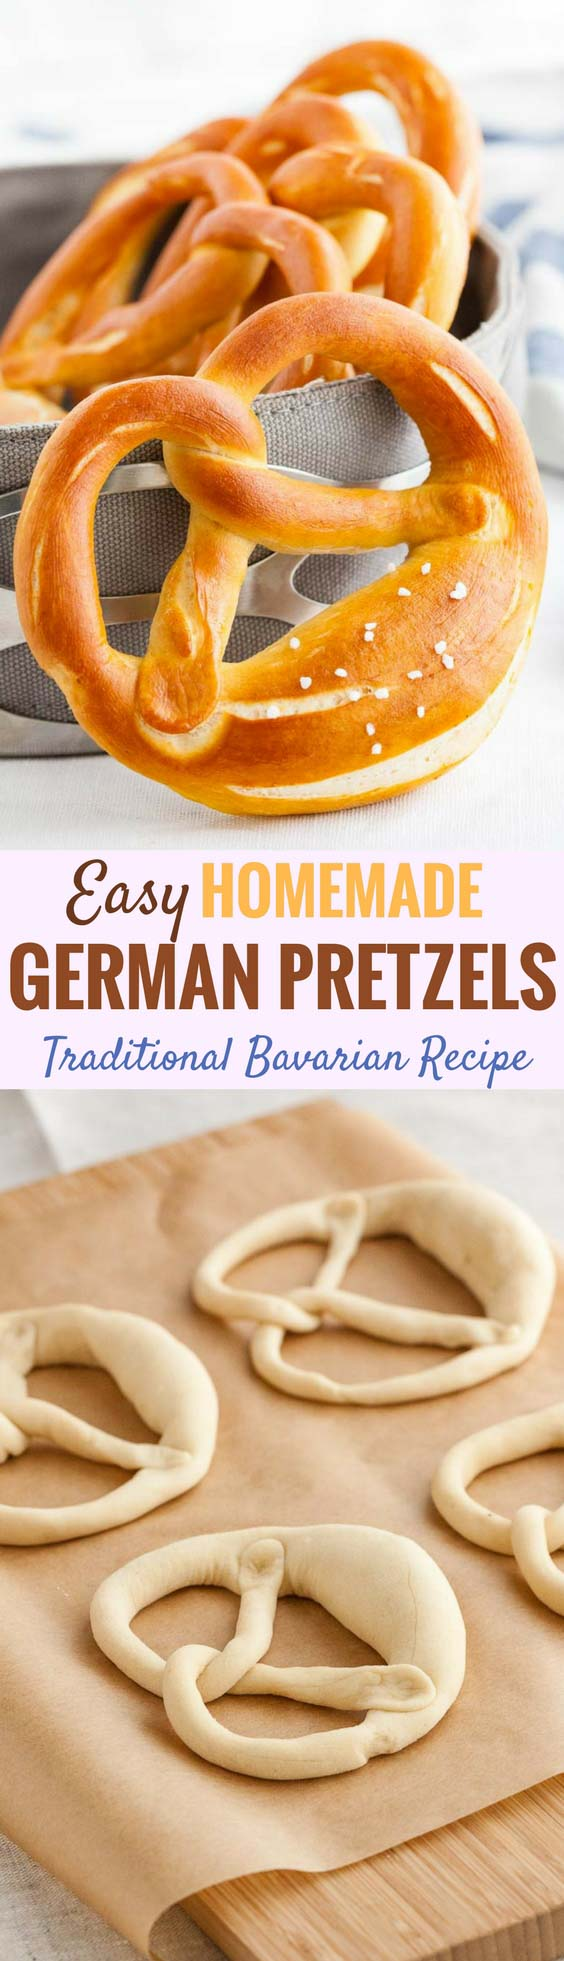 These Bavarian pretzels are a very popular snack in Germany and perfect for your next Oktoberfest party! They taste delicious dipped in cheese sauce and are easy to make at home with simple ingredients. This authentic German Pretzel Recipe makes enough for a crowd as an appetizer. #germanpretzels #germanrecipes #softpretzels #pretzels #oktoberfestrecipes